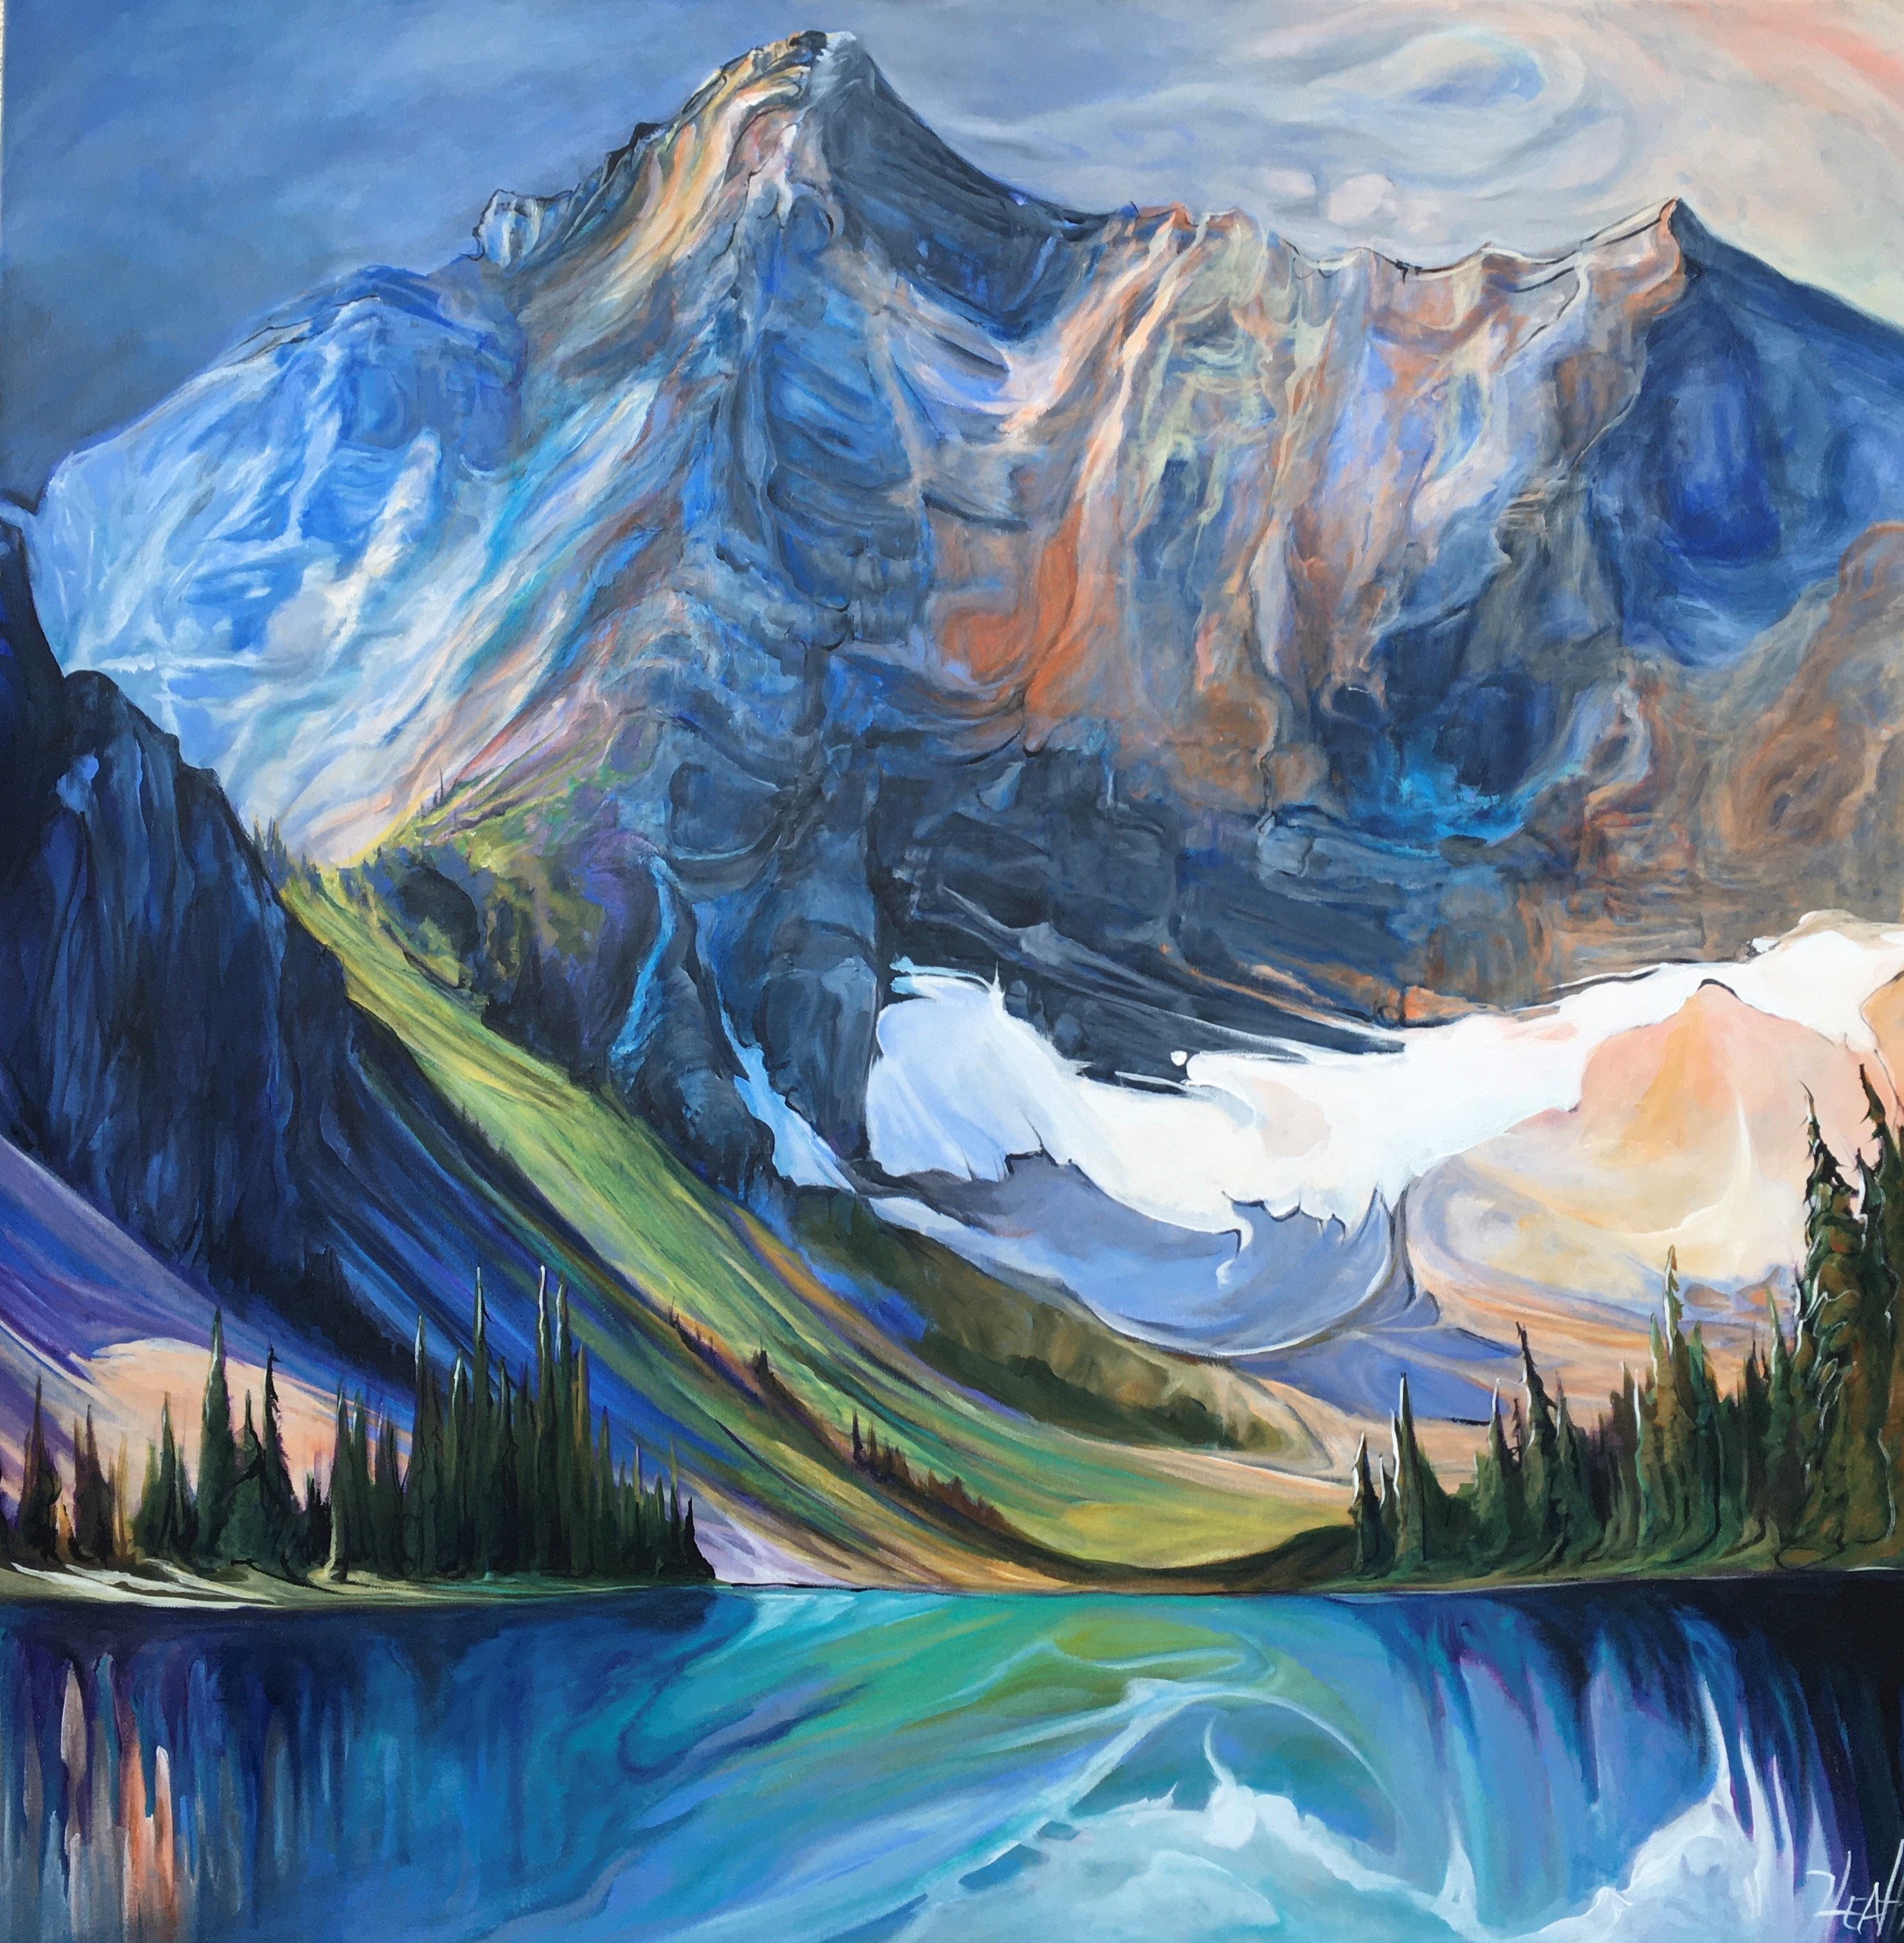 Serenity at Sarrail Ridge 48 x 48 SO:LD